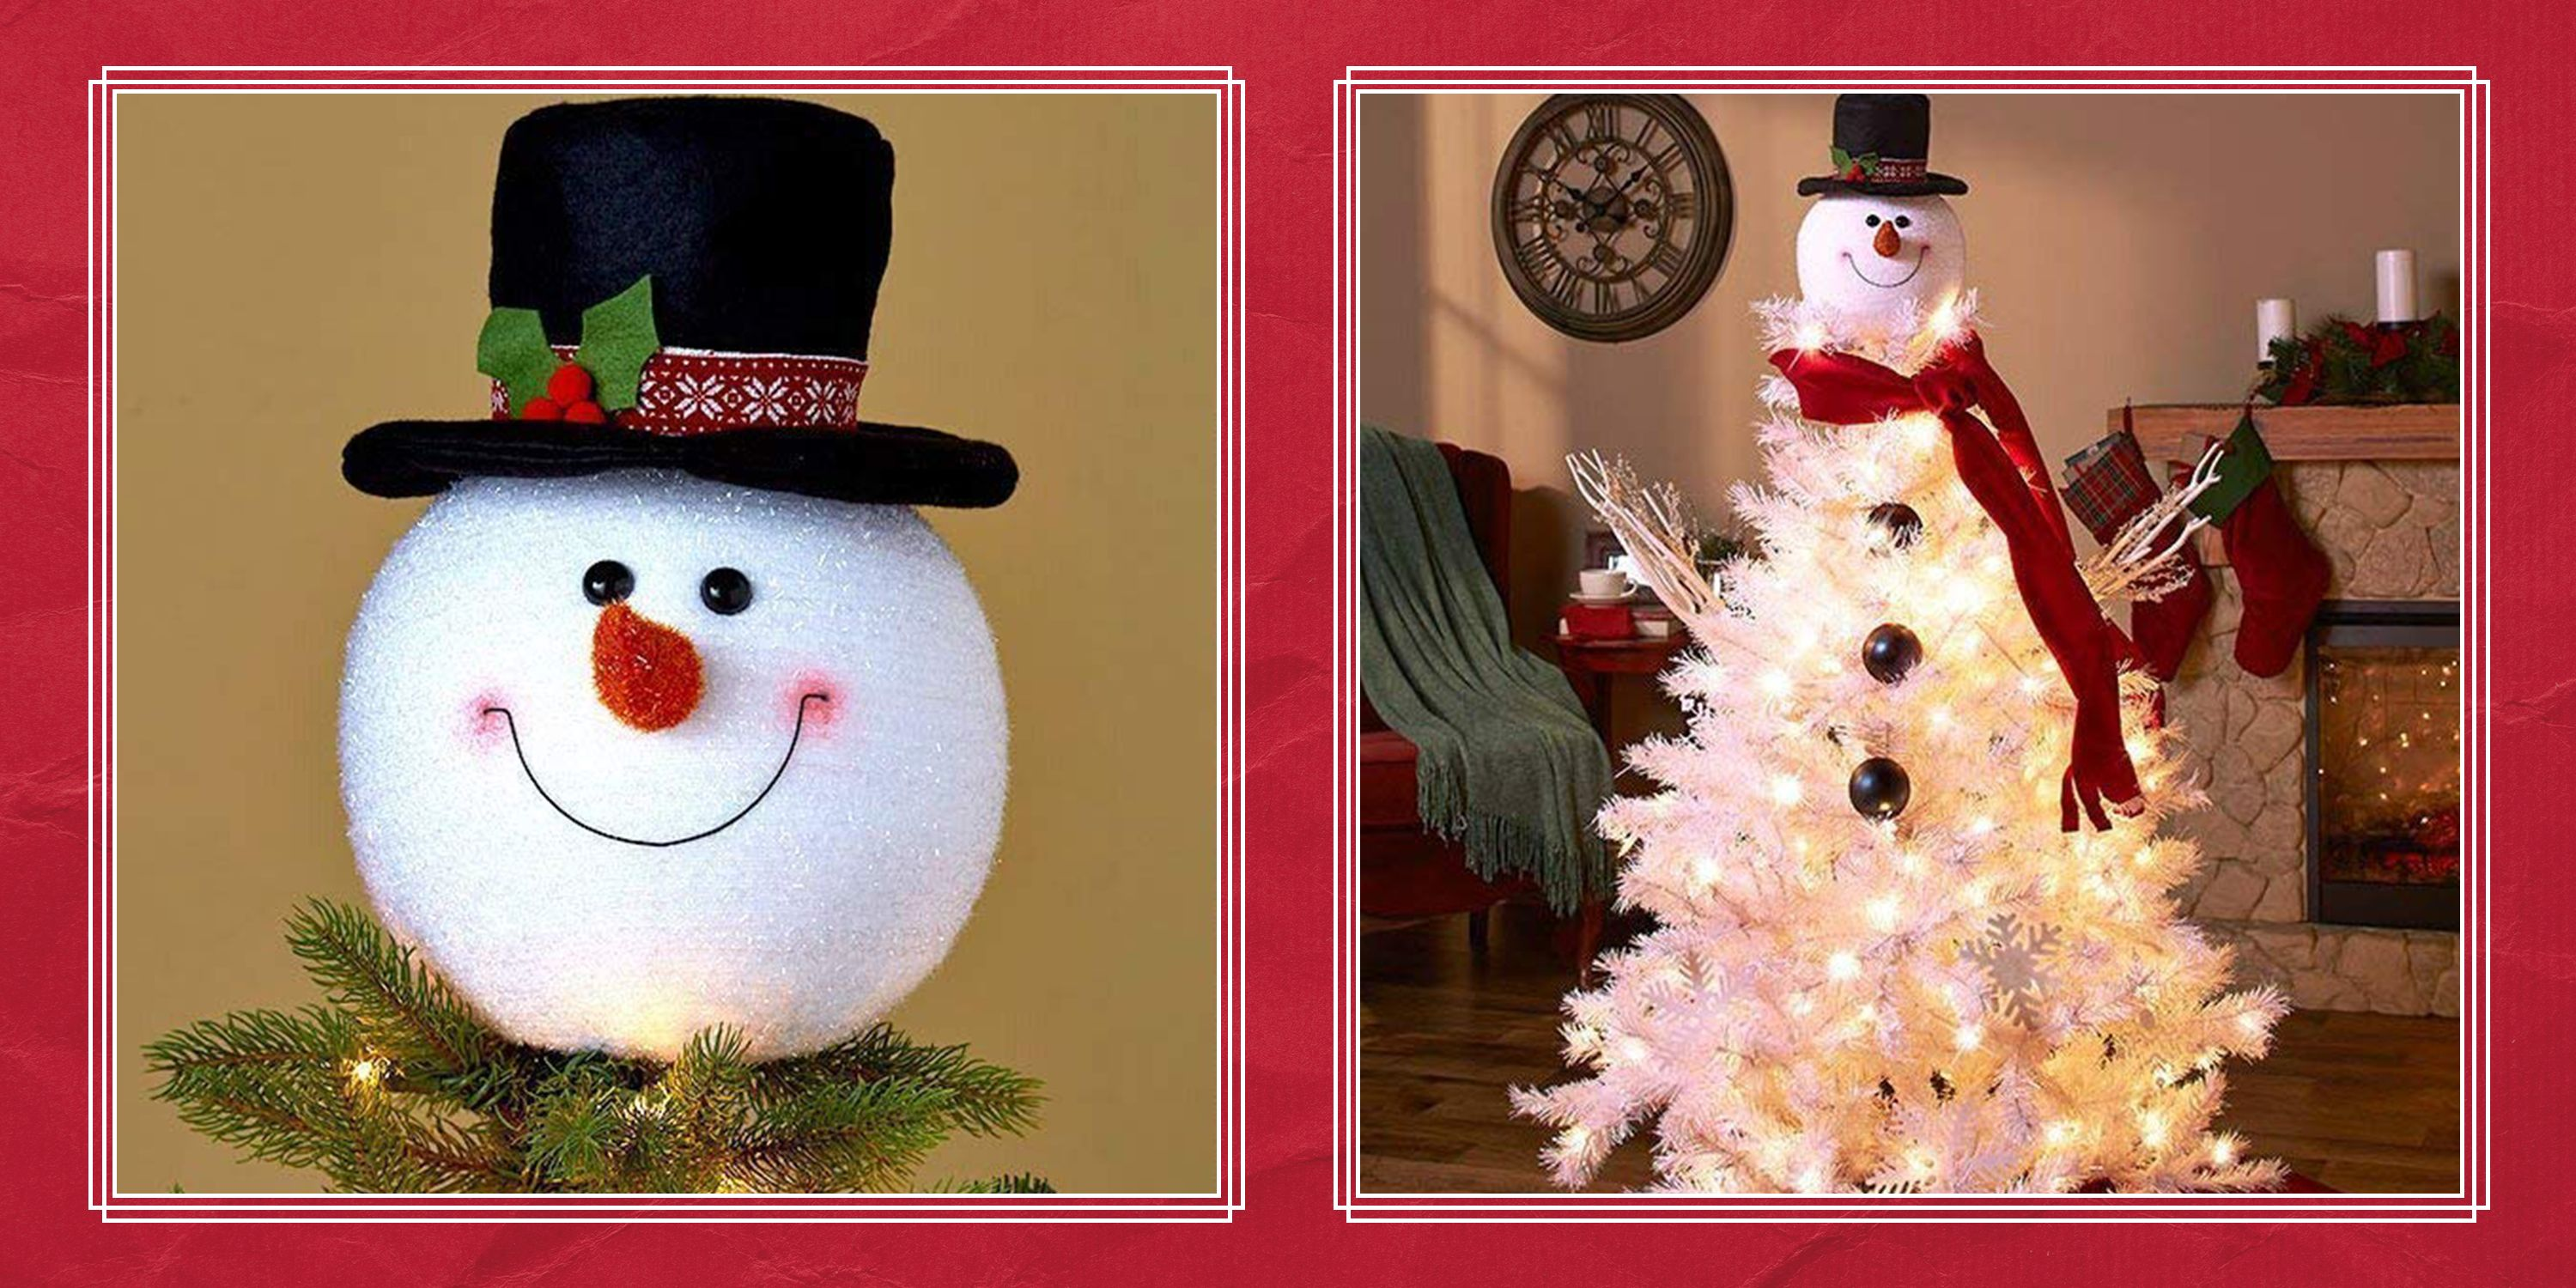 Snowman Christmas Tree Tutorial Where To Buy A Snowman Christmas Tree